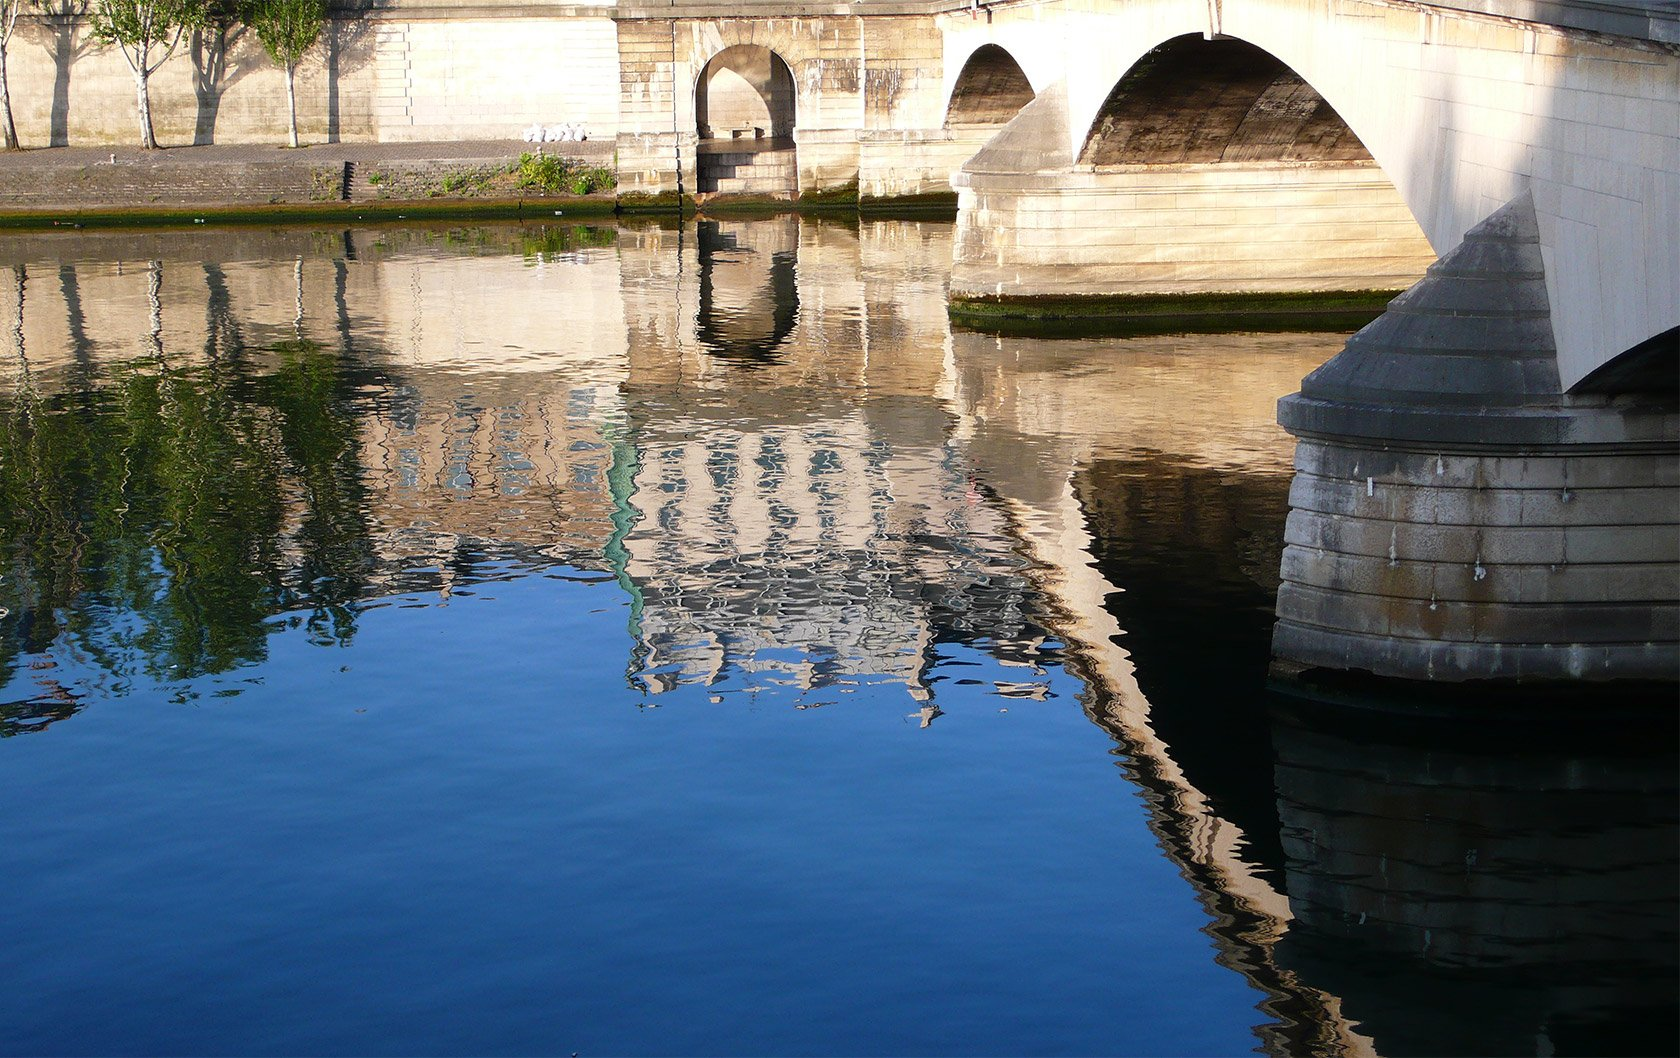 reflections-paris-landmarks-on-the-water